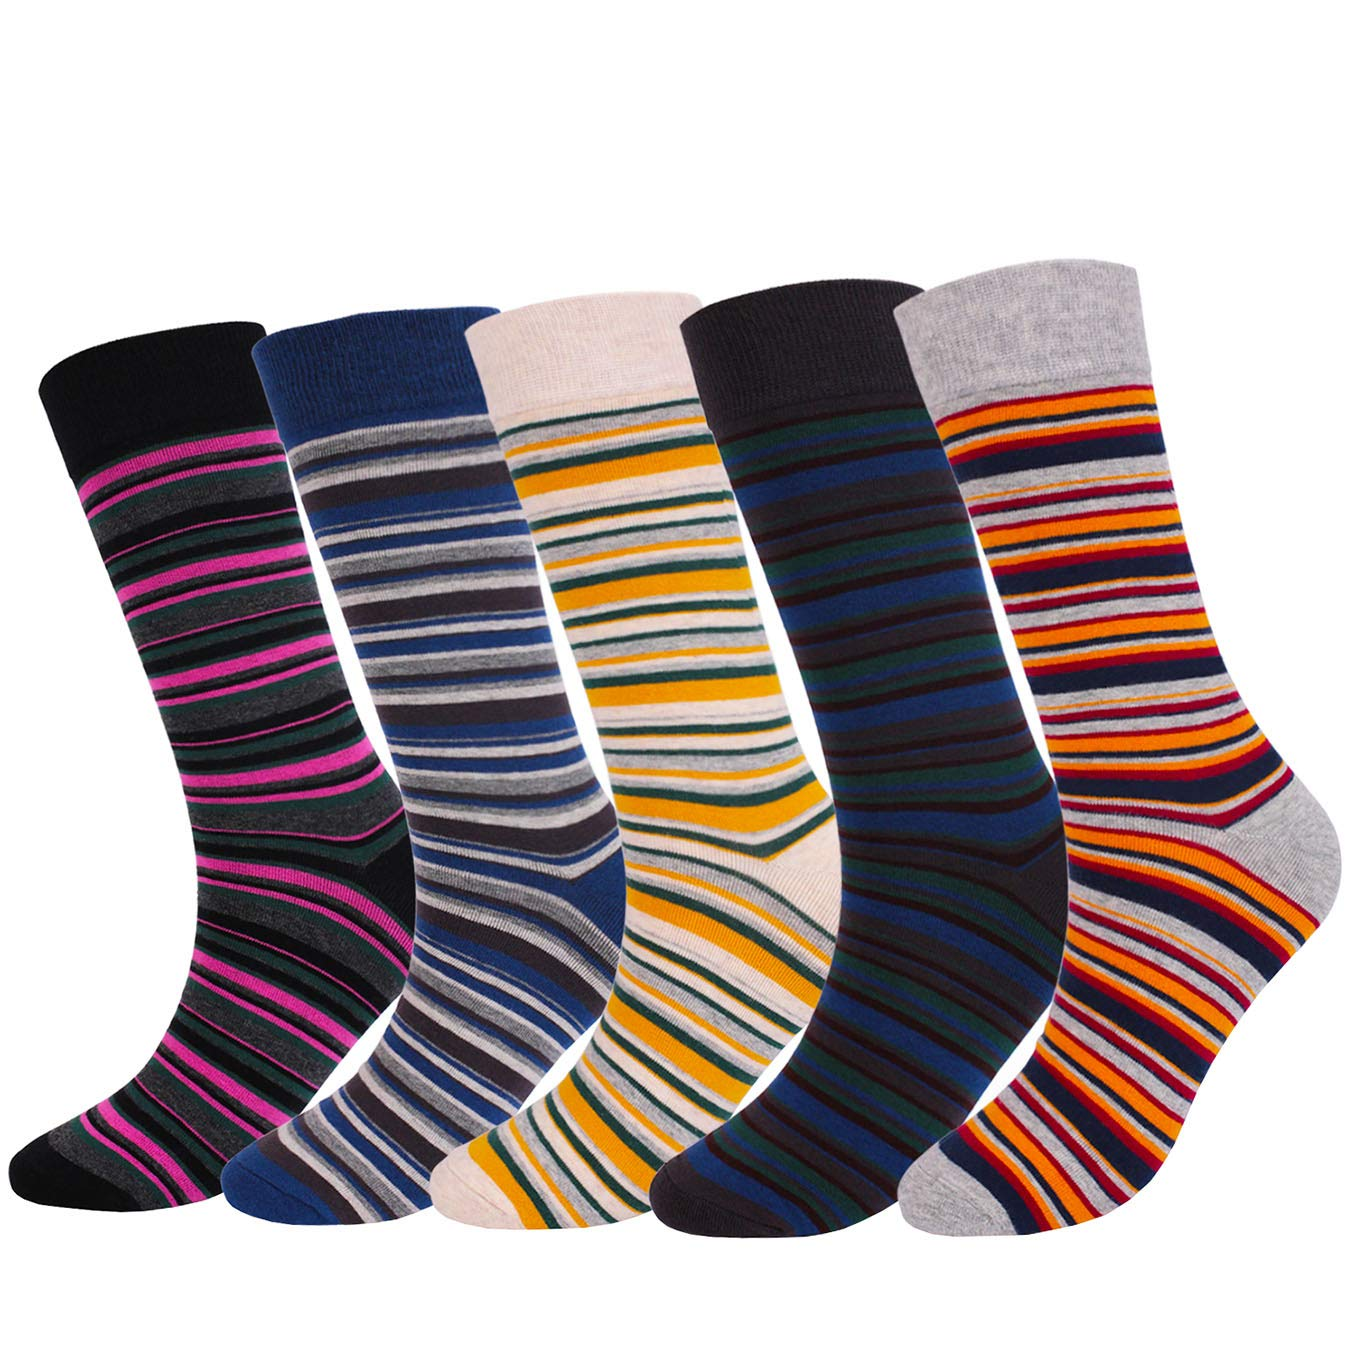 Mixsense Mens Dress Cool Colorful Funky Design Combed Cotton Casual Crew Socks Striped Socks 01) CAM-HN-001